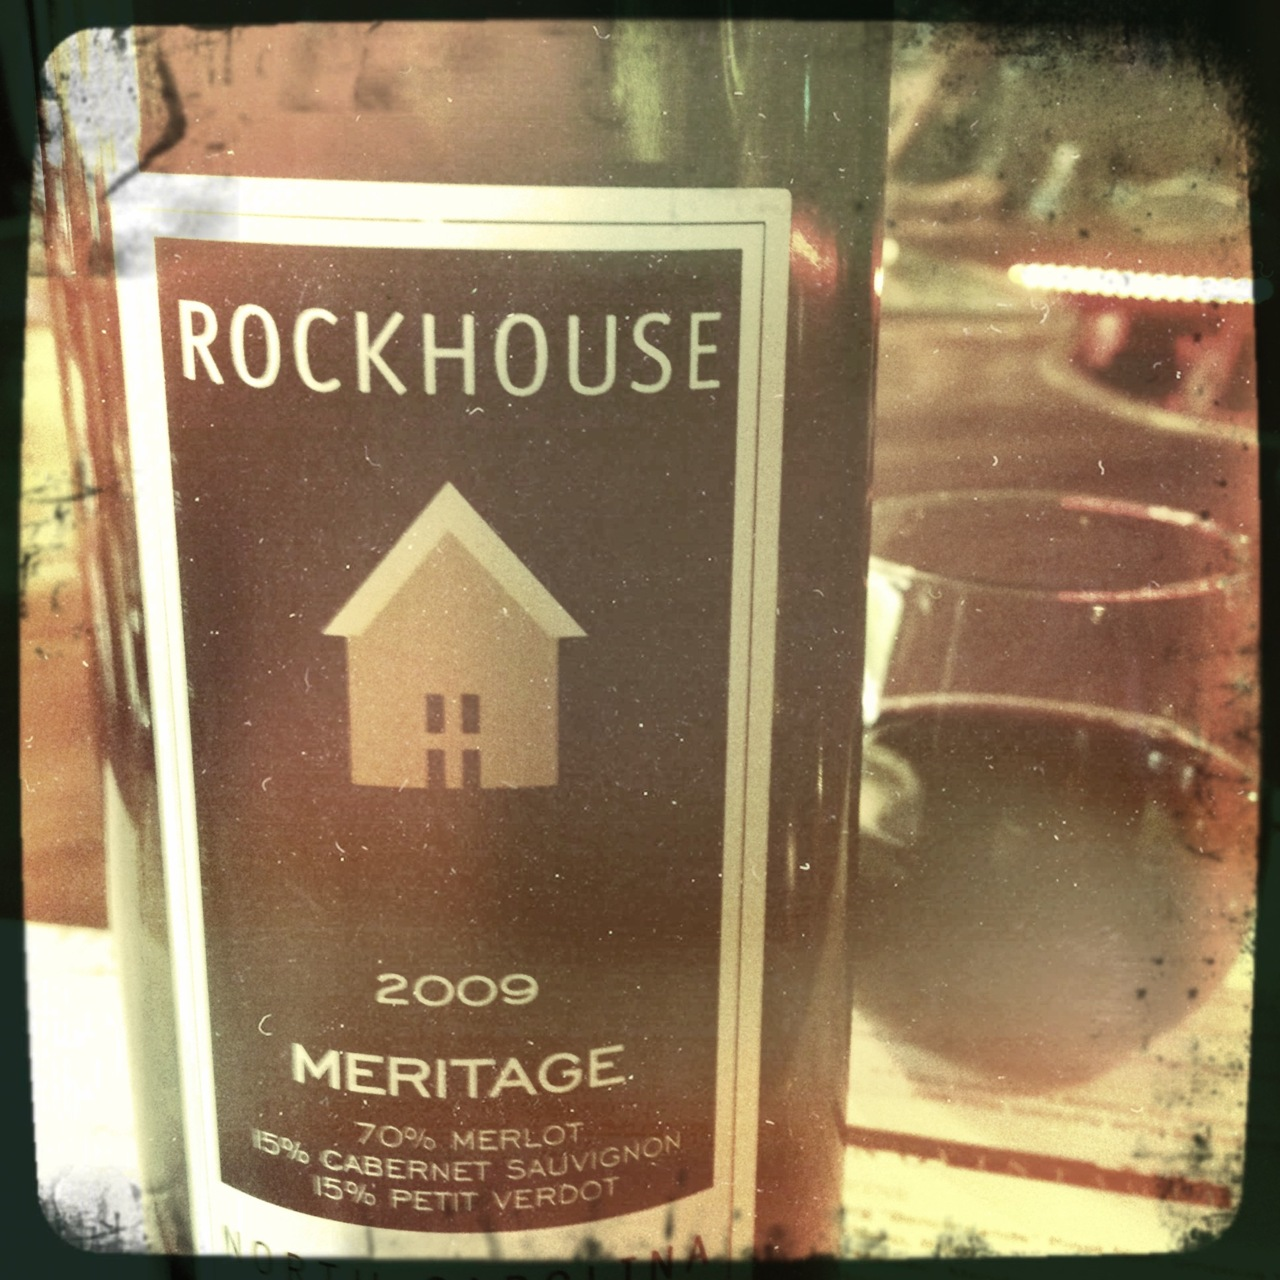 Rockhouse rocks. Rich, layered, smoky blackberry… #NC #wine #tryon #vino